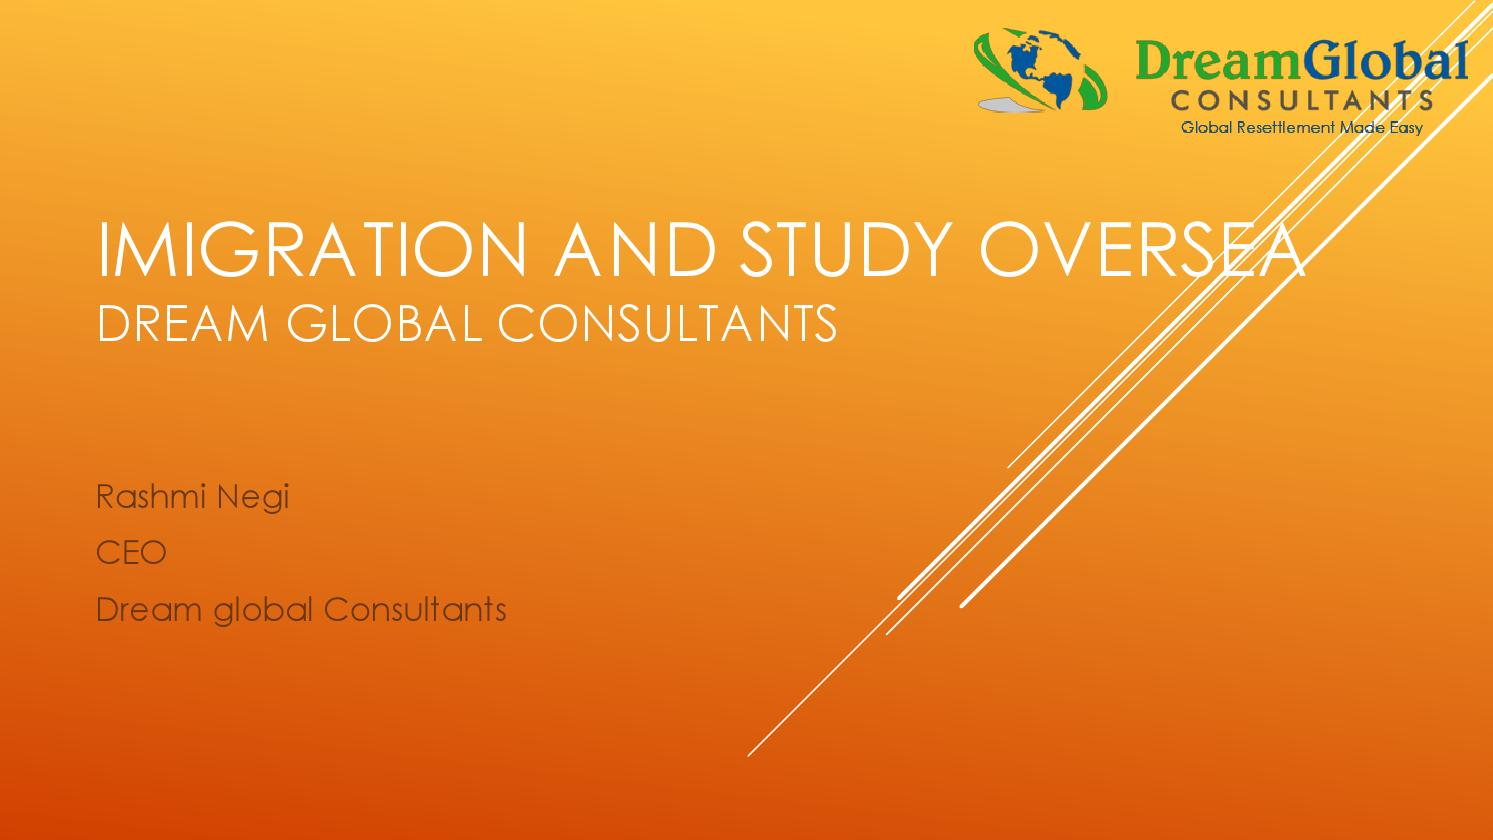 dream global consultants  imigration and study oversea  by